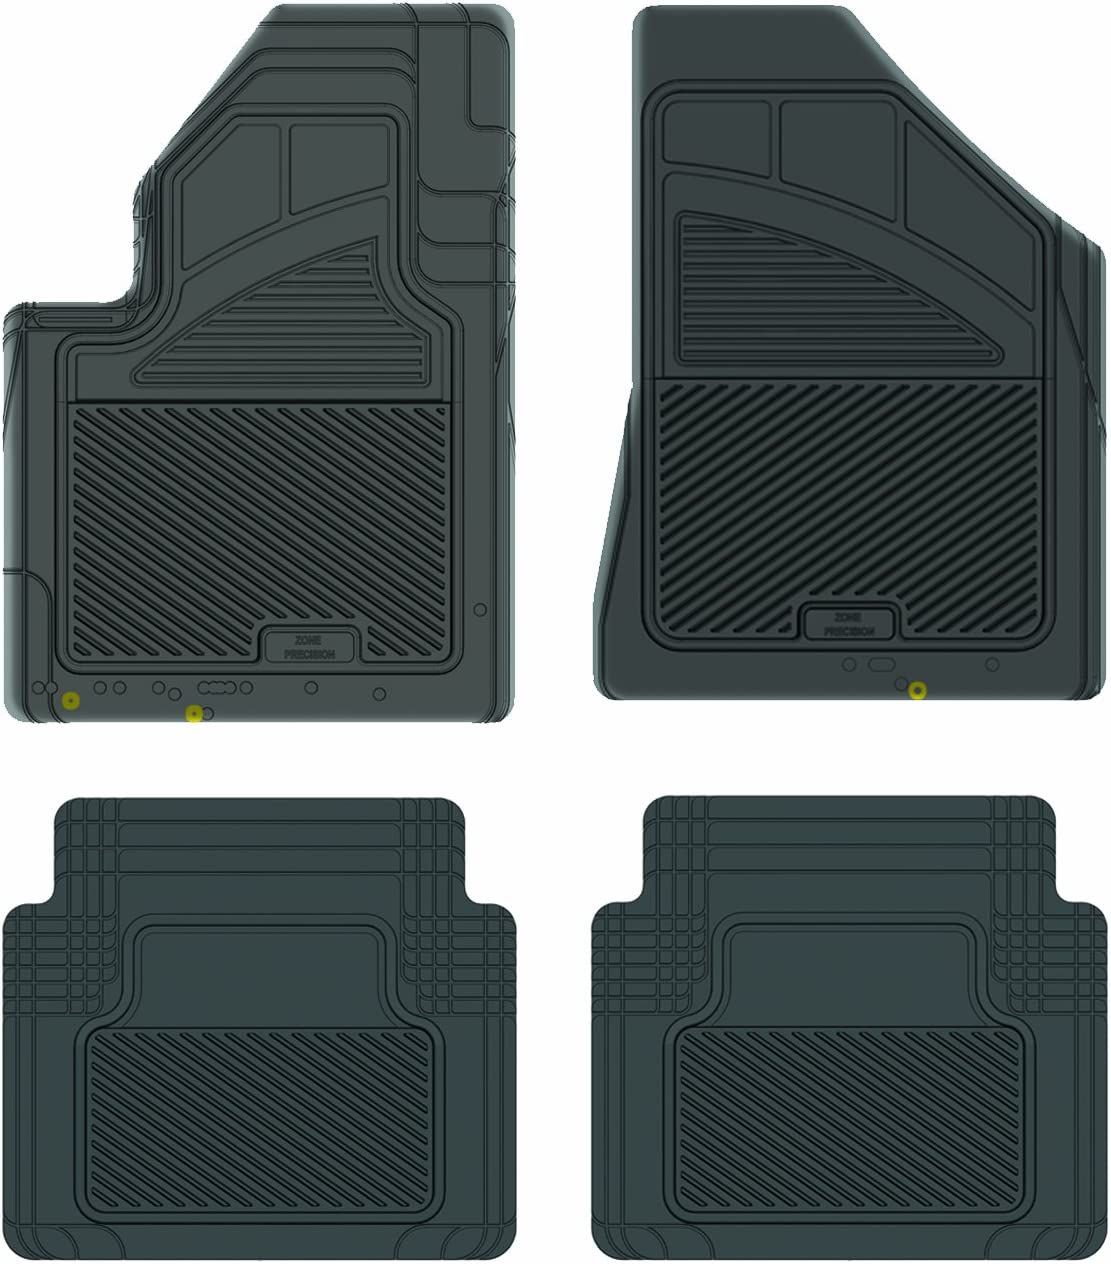 1974 GGBAILEY D4617A-S2A-BLK/_BR Custom Fit Automotive Carpet Floor Mats for 1973 Passenger /& Rear 1975 1976 Mercedes-Benz 230//240D//280//280C Black with Red Edging Driver